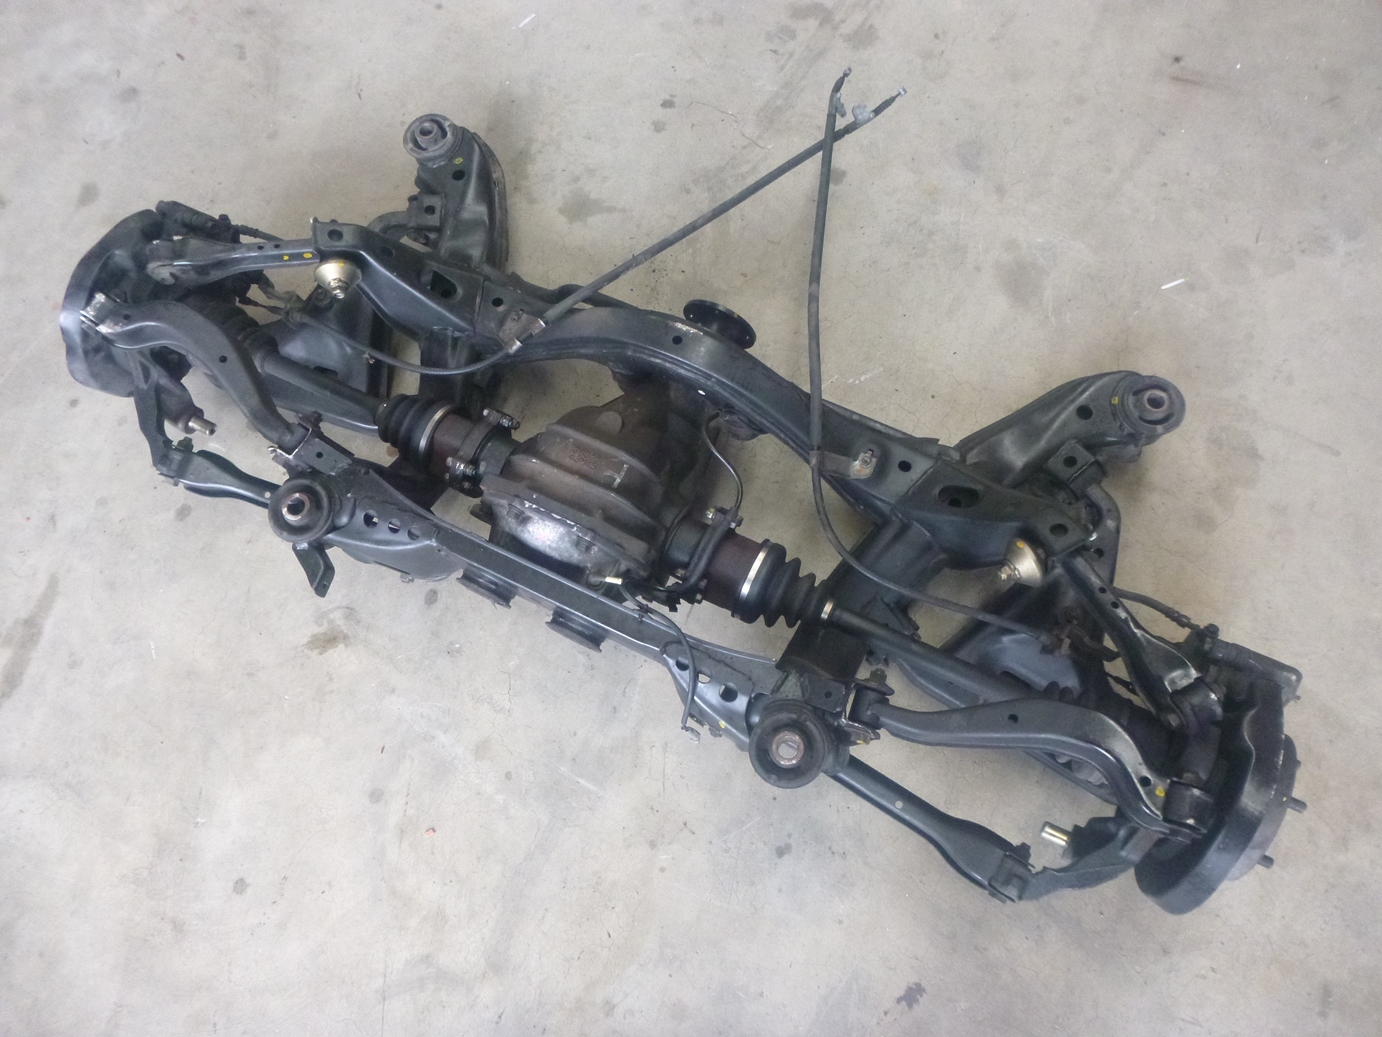 Nissan S15 200sx Complete Rear Suspension Cradle Control Arms LSD Diff Assembly   eBay